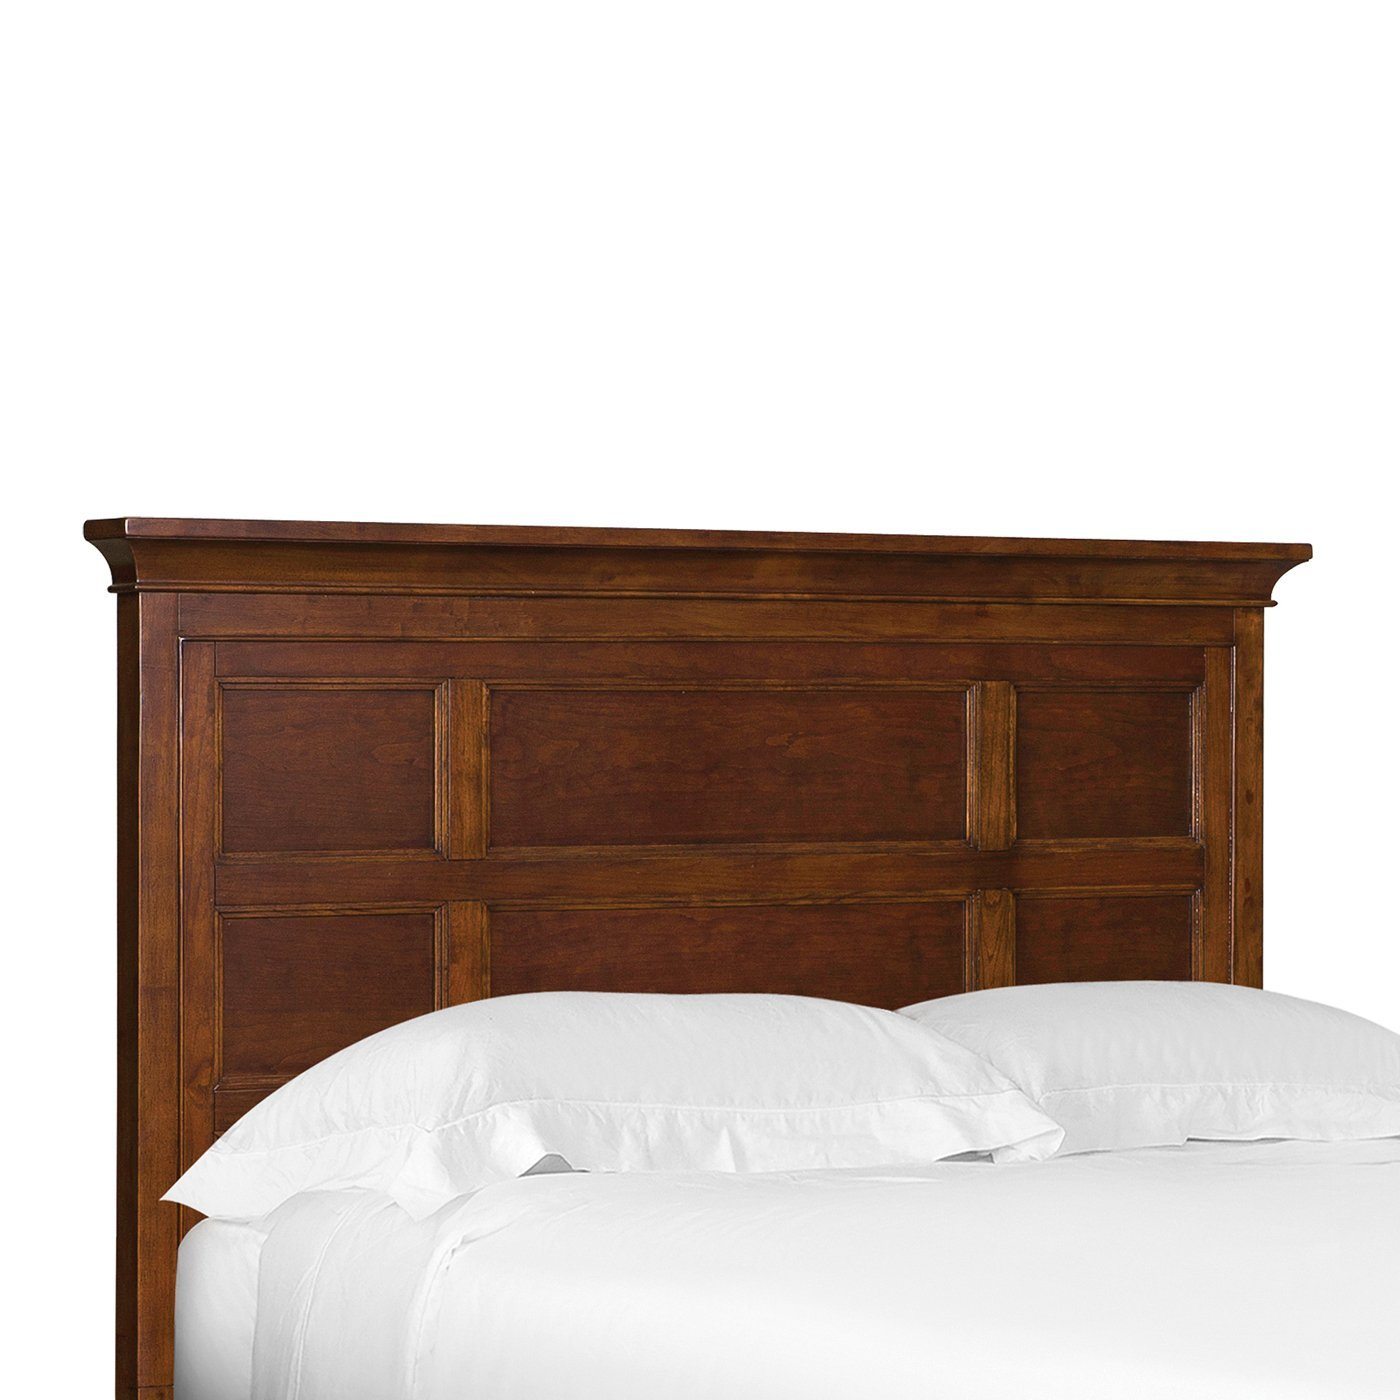 Furniture Gt Bedroom Furniture Gt Wood Gt Antique Warm Wood